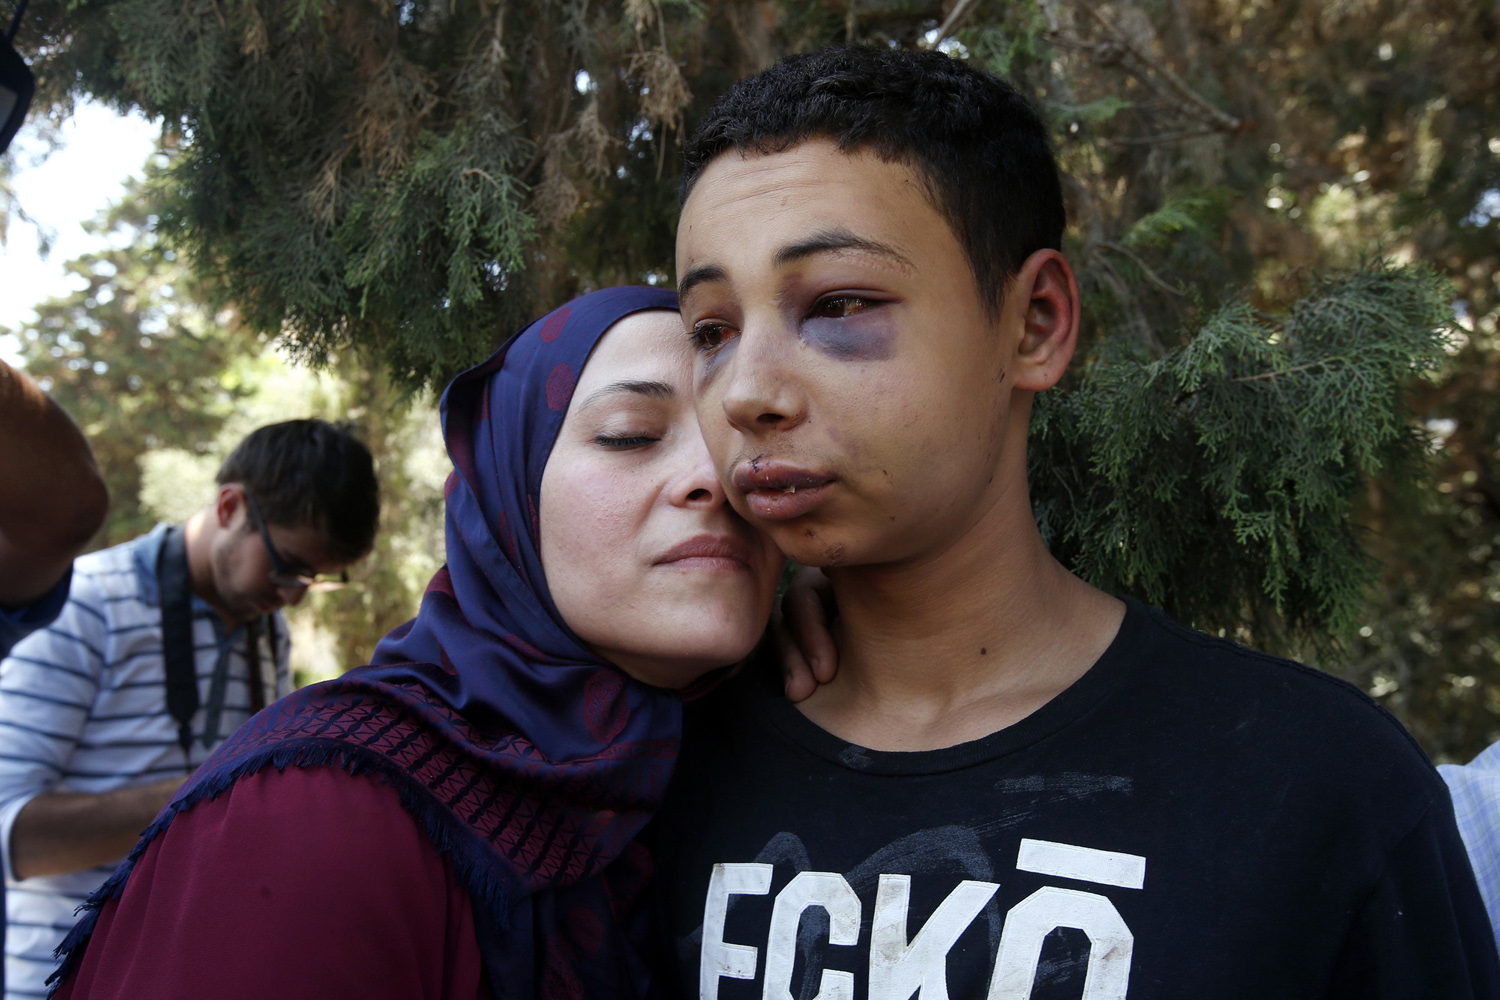 Jul. 6, 2014. Tariq Khdeir (R) is greeted by his mother after being released from jail in Jerusalem.